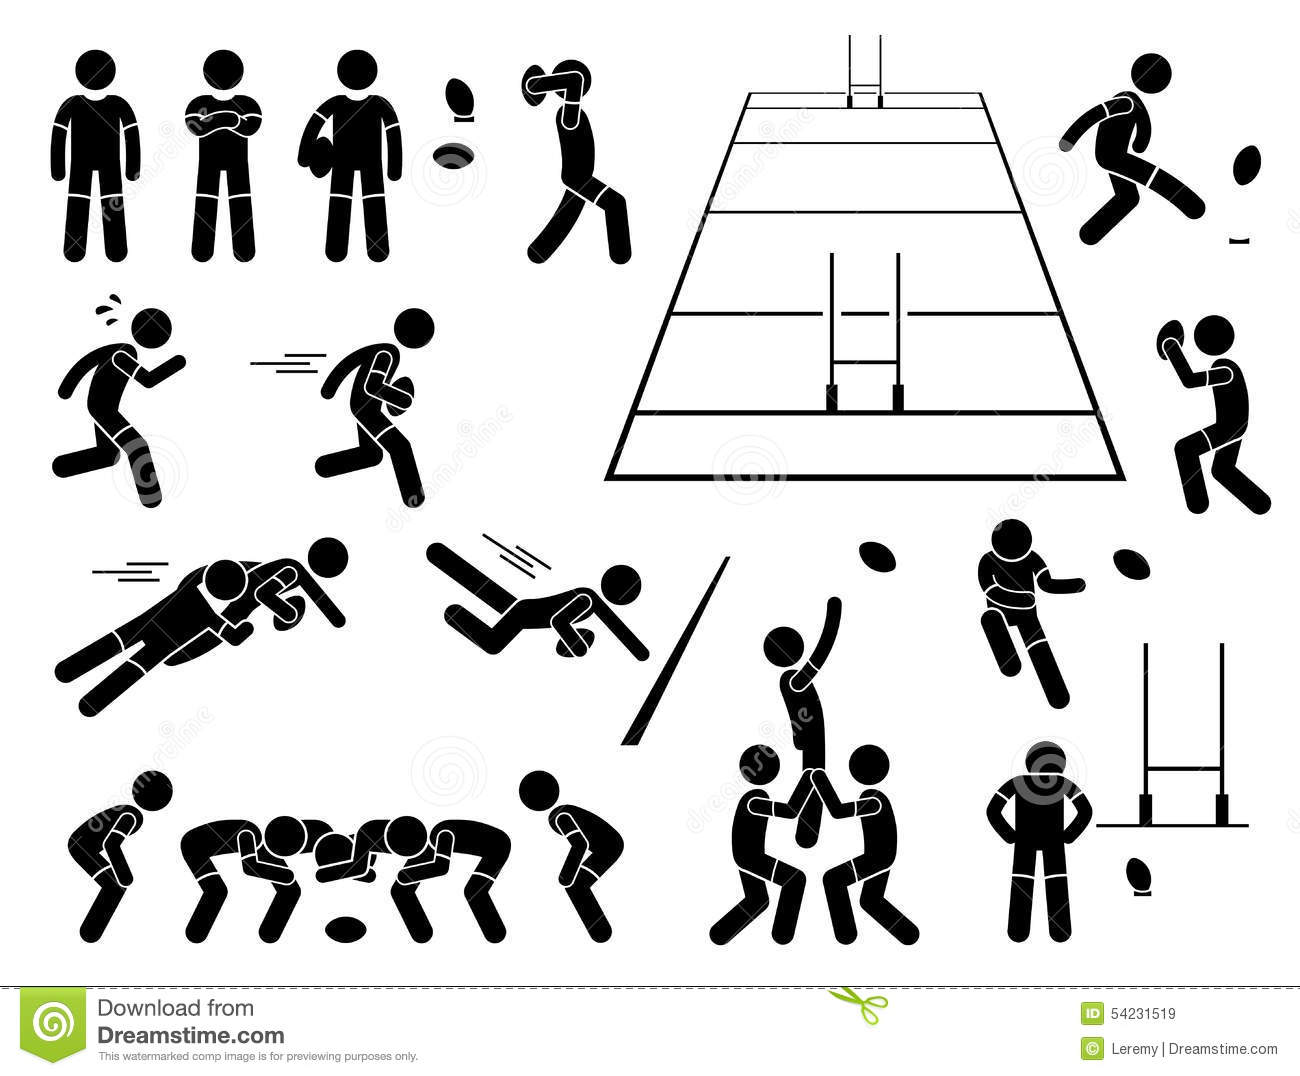 Retrospektive Plusdelta Mit Individueller Priorisierung likewise Illustration Stock Poses Cliparts D Actions De Joueur De Rugby Image54231519 together with Storycards as well Weihnachts Retrospektive furthermore La Vision Sin La Ejecucion Solo Es Una Alucinacion. on scrum